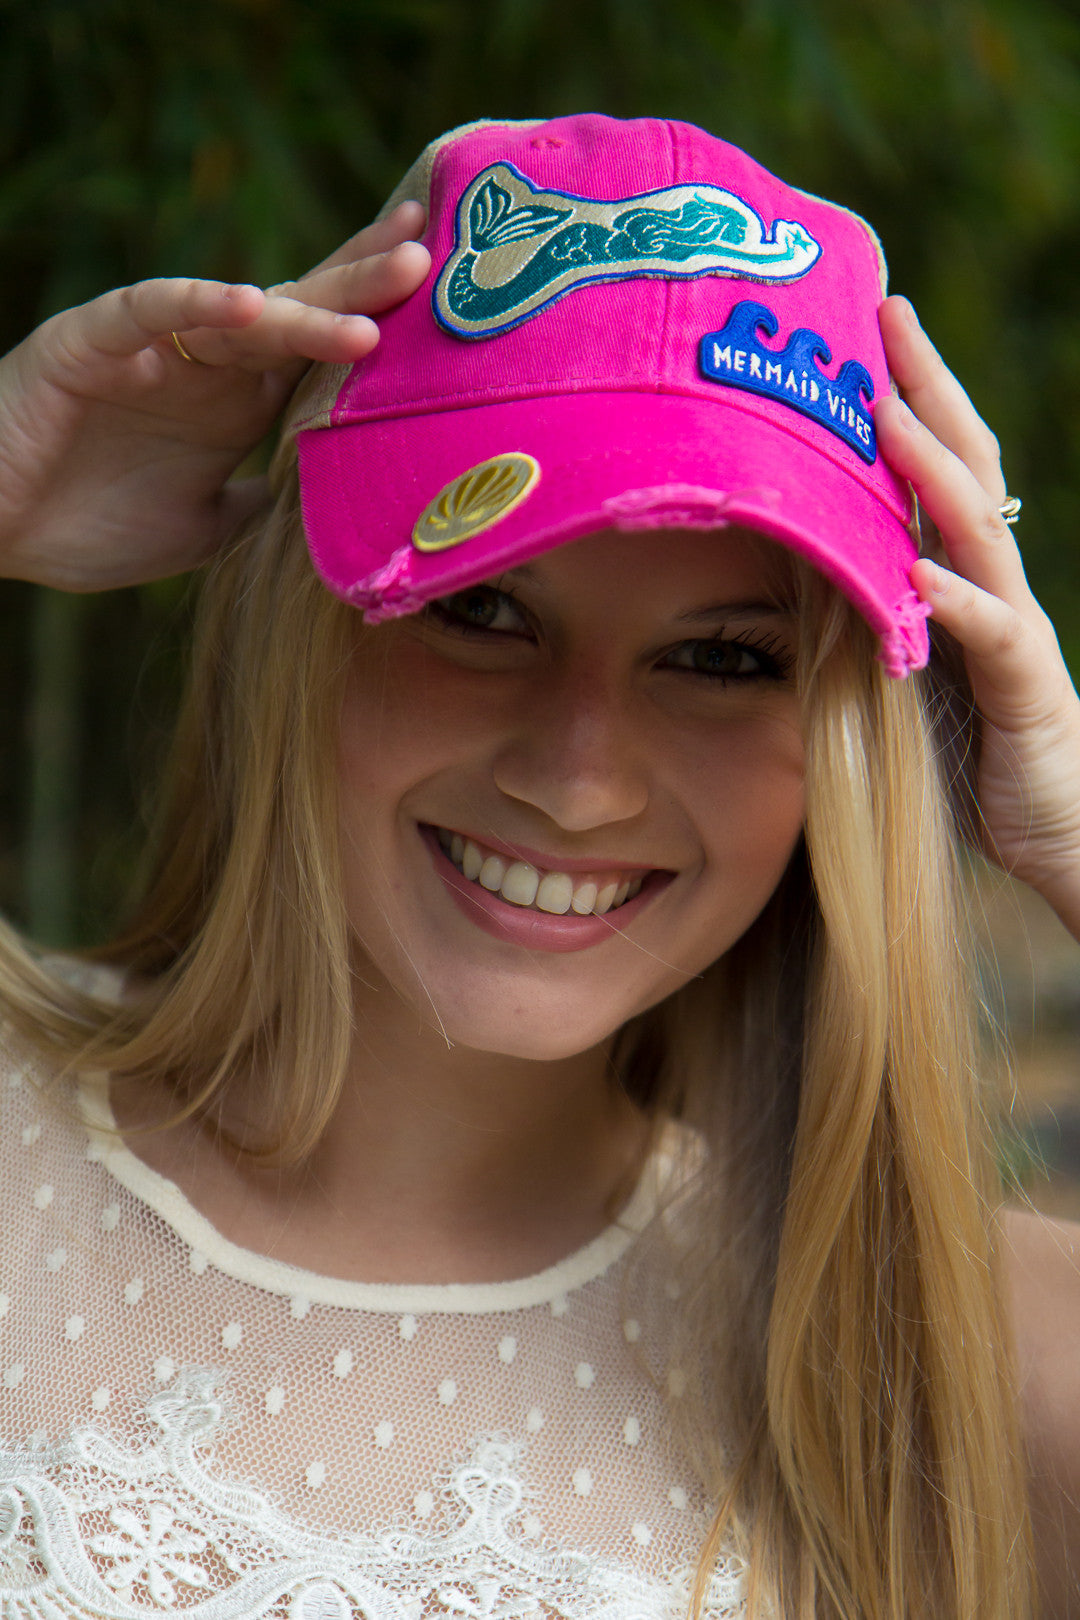 Mermaid Vibes Trucker Hat by Genevieve Gail